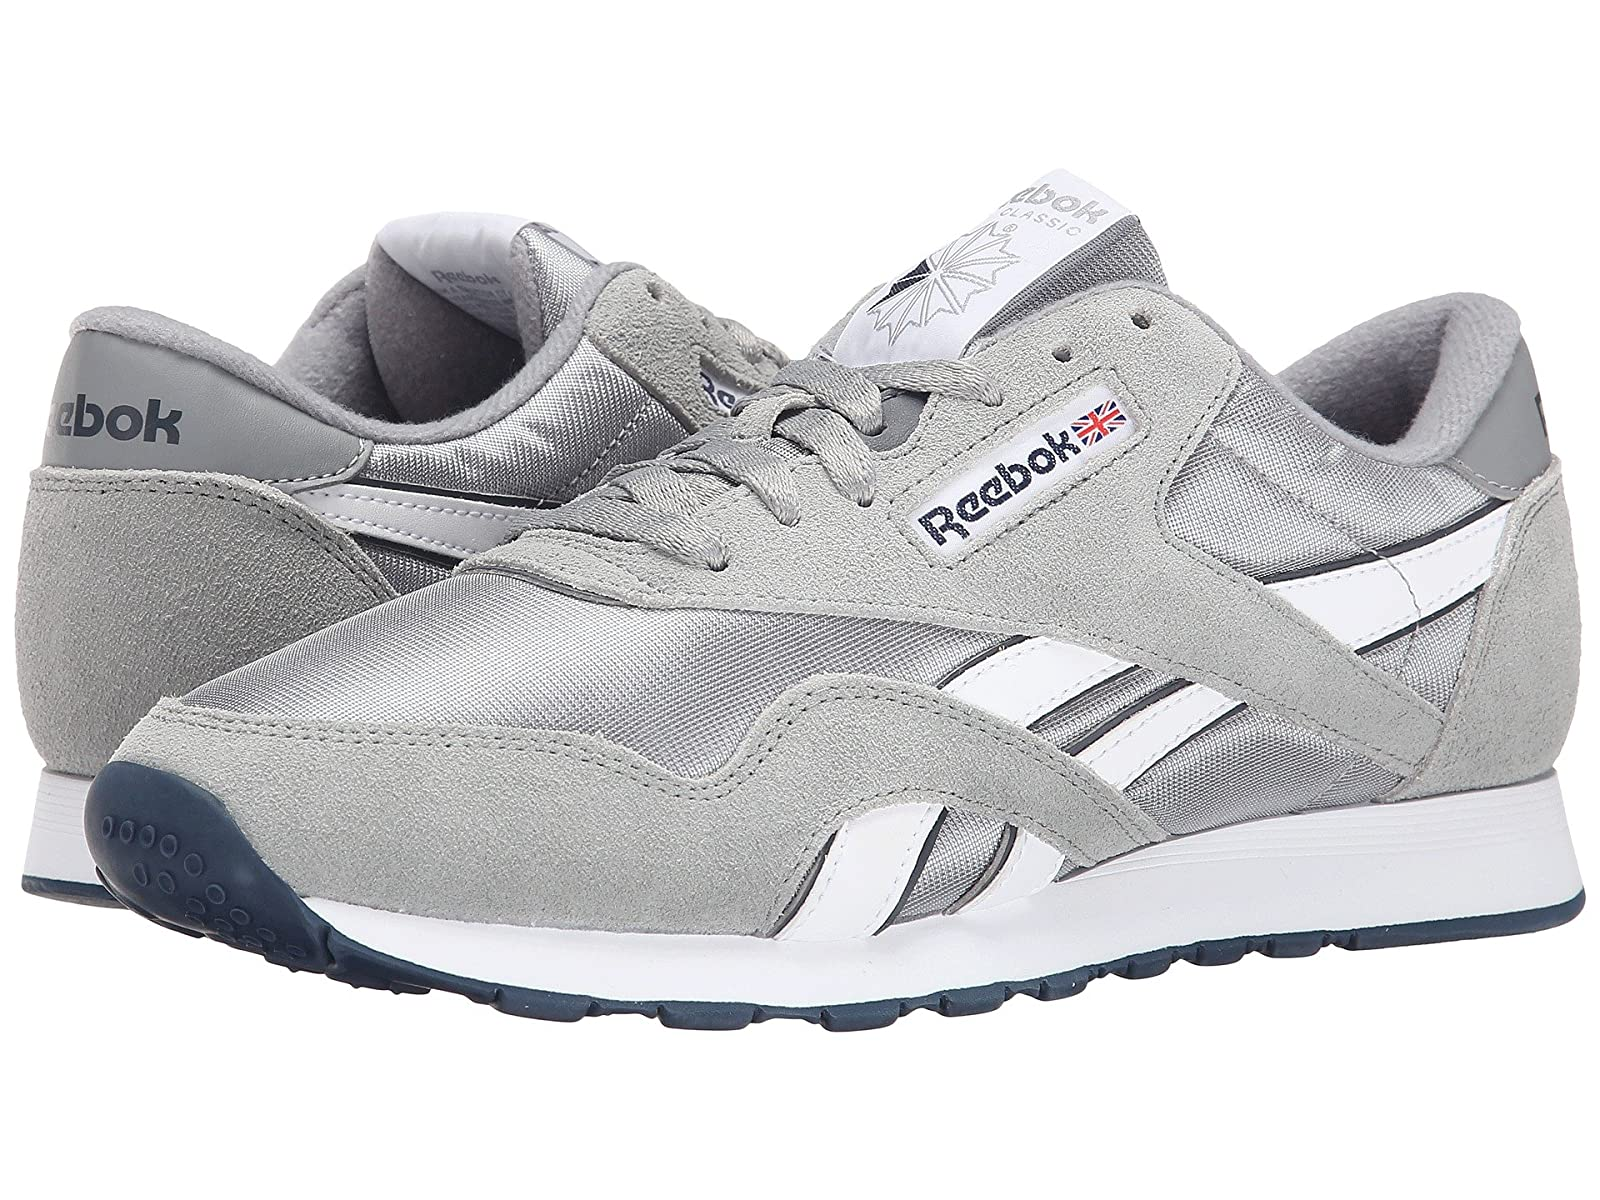 Men's/Women's:Reebok Lifestyle Lifestyle Lifestyle Classic Nylon:Direct Management fad41a